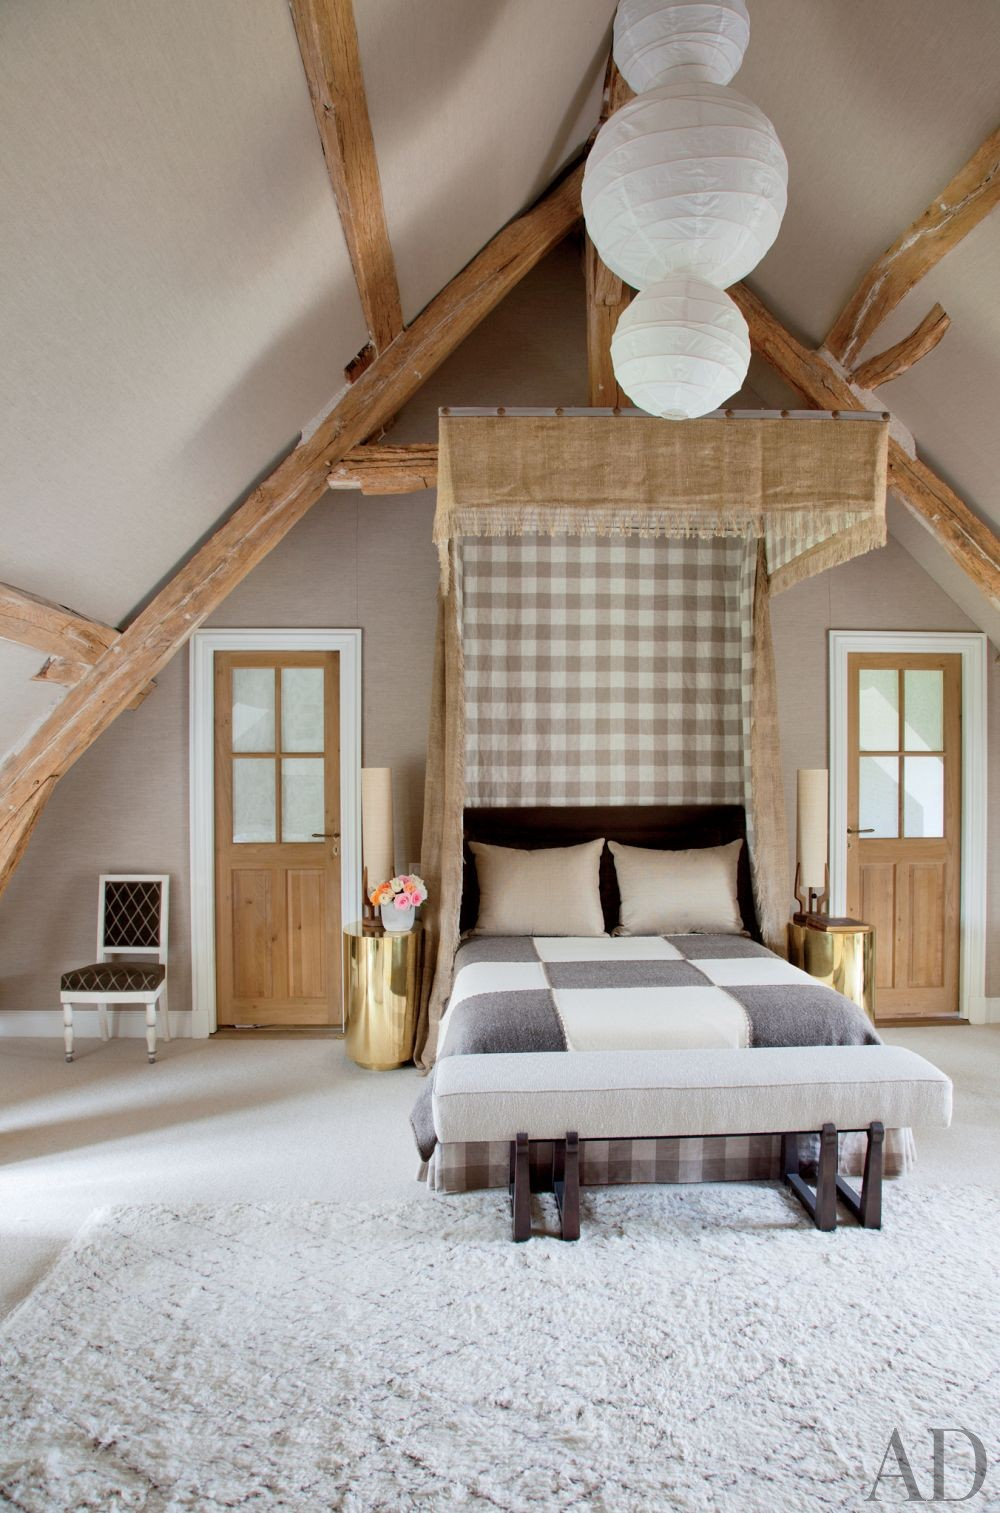 Rustic Bedroom by Jean-Louis Deniot in Loire Valley, France